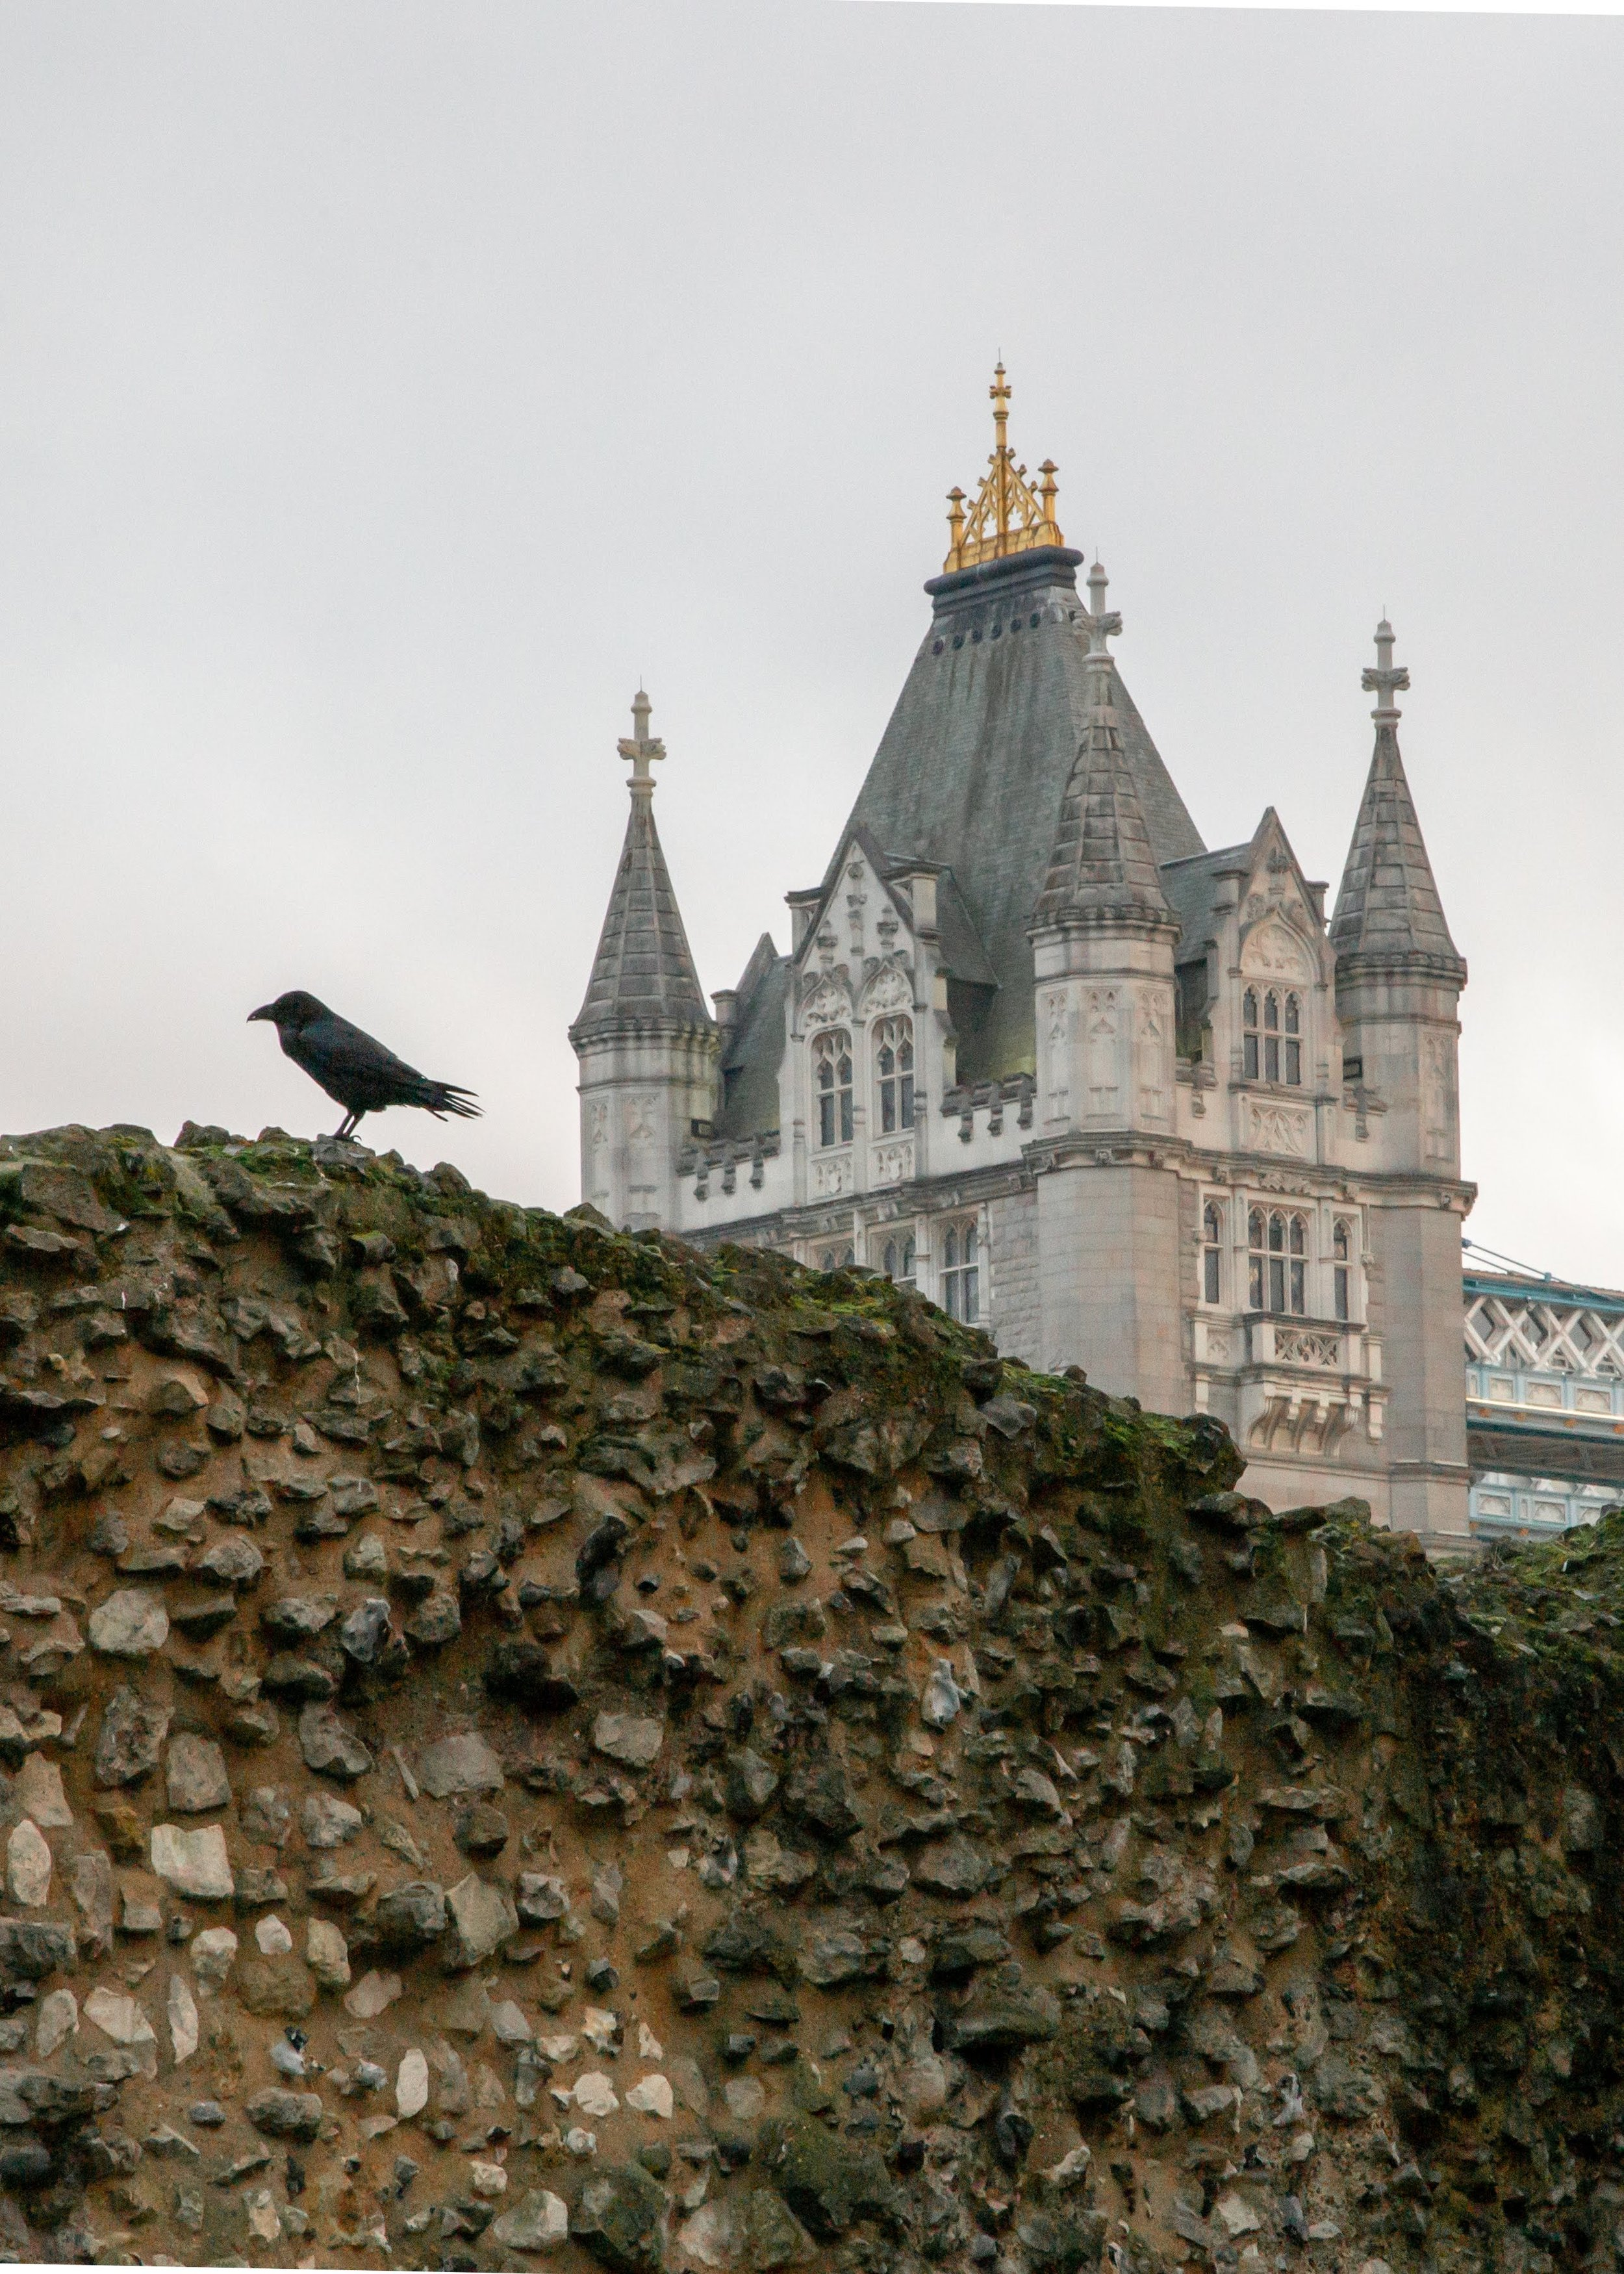 I love ravens, so this picture made the top of my list, taken at the  Fortress of the Tower of London, England,  looking at the Tower Bridge.  @roger.cummings